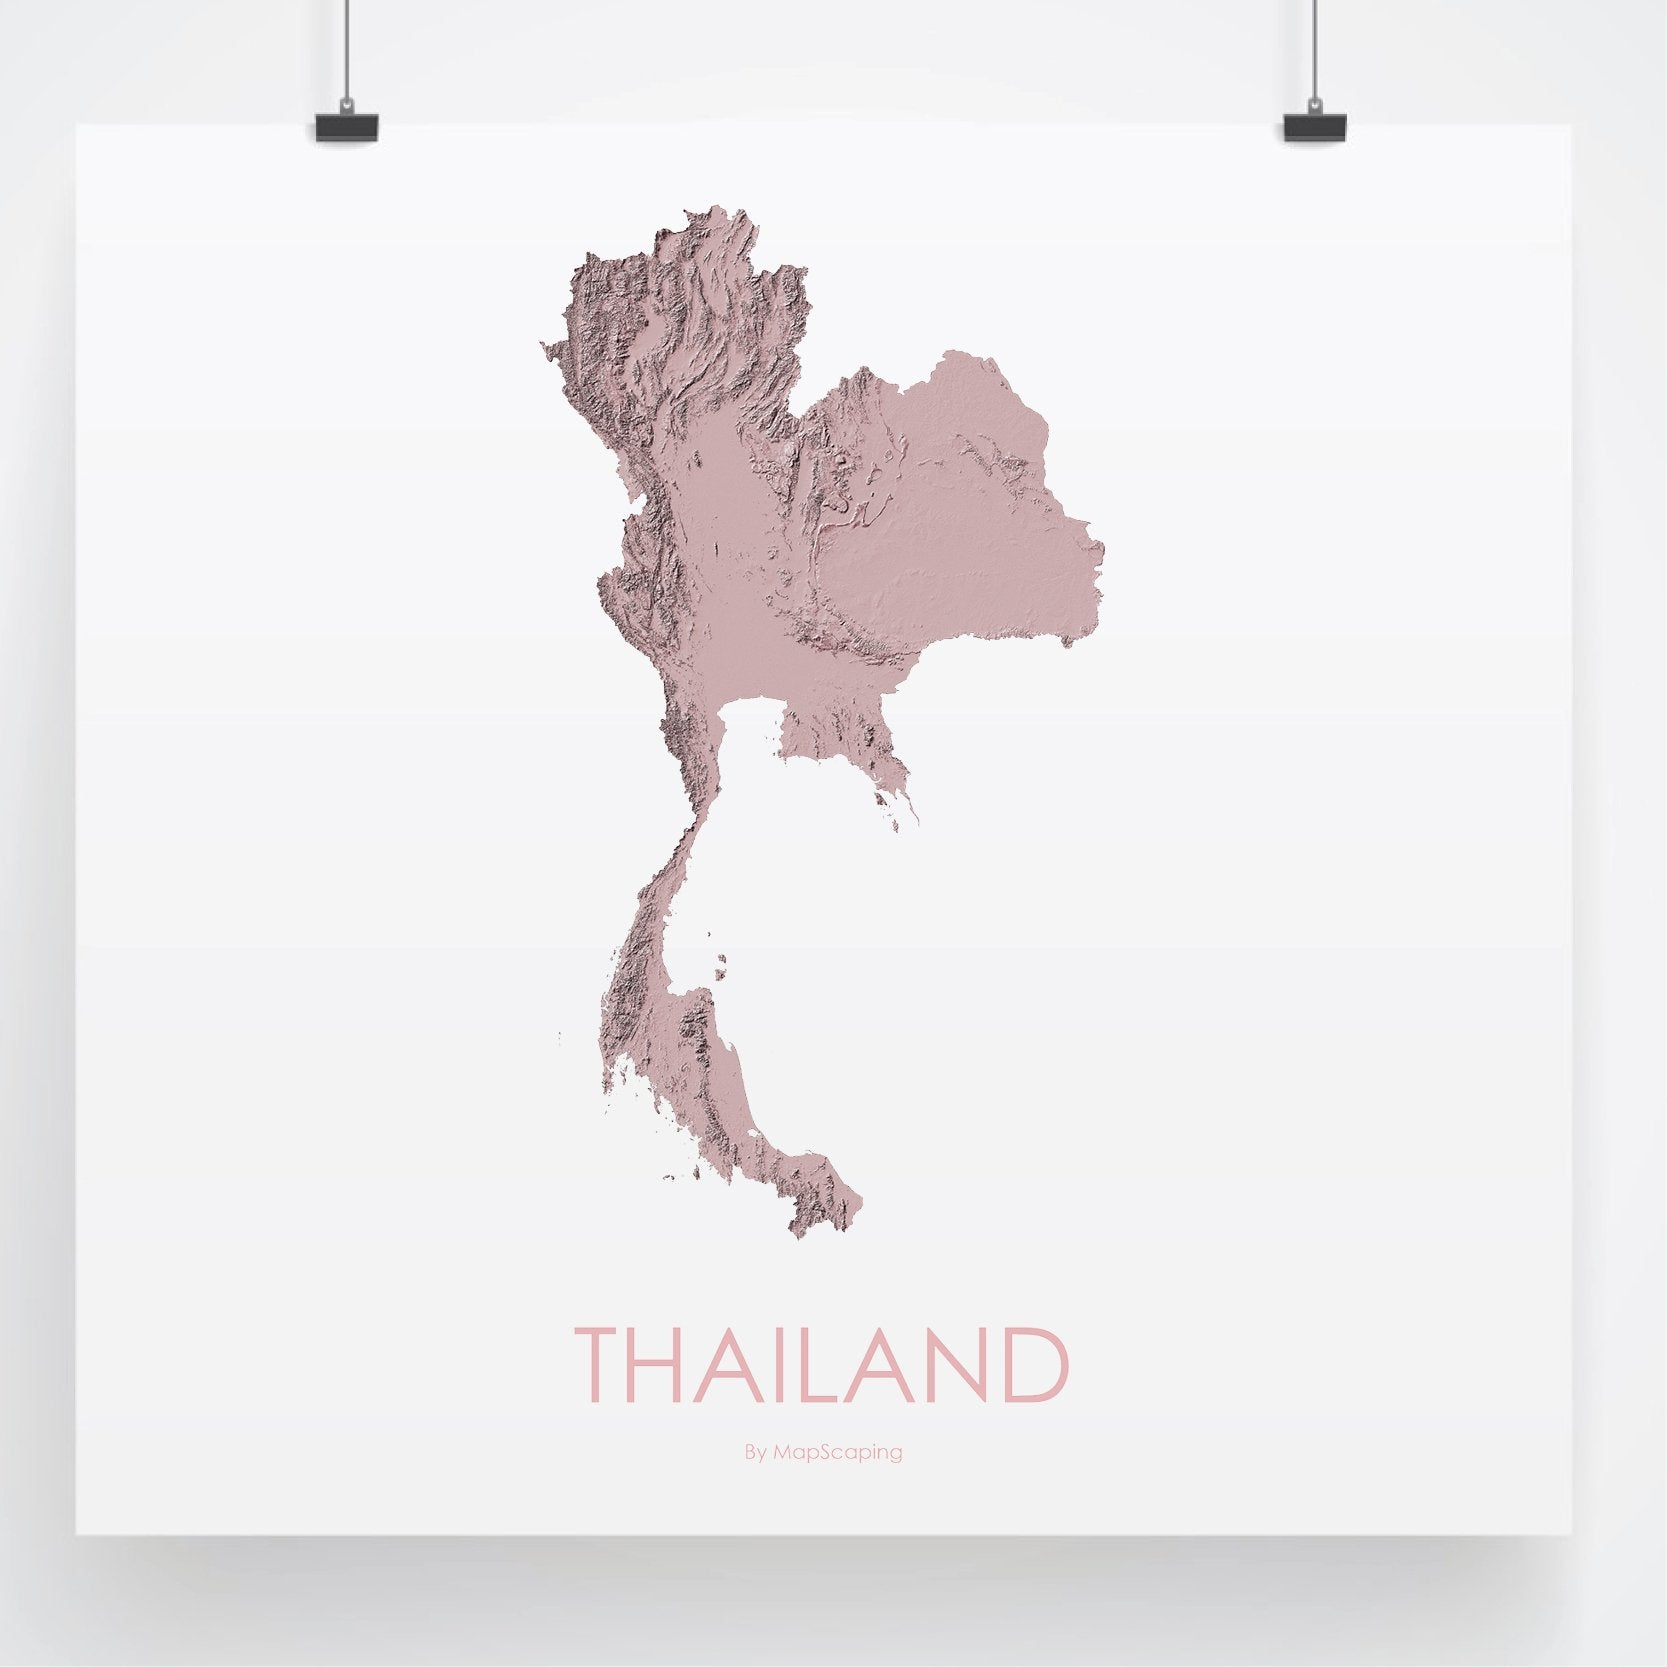 Thailand Topographic Map.Thailand Topographic Wall Art Map Mapscaping Com